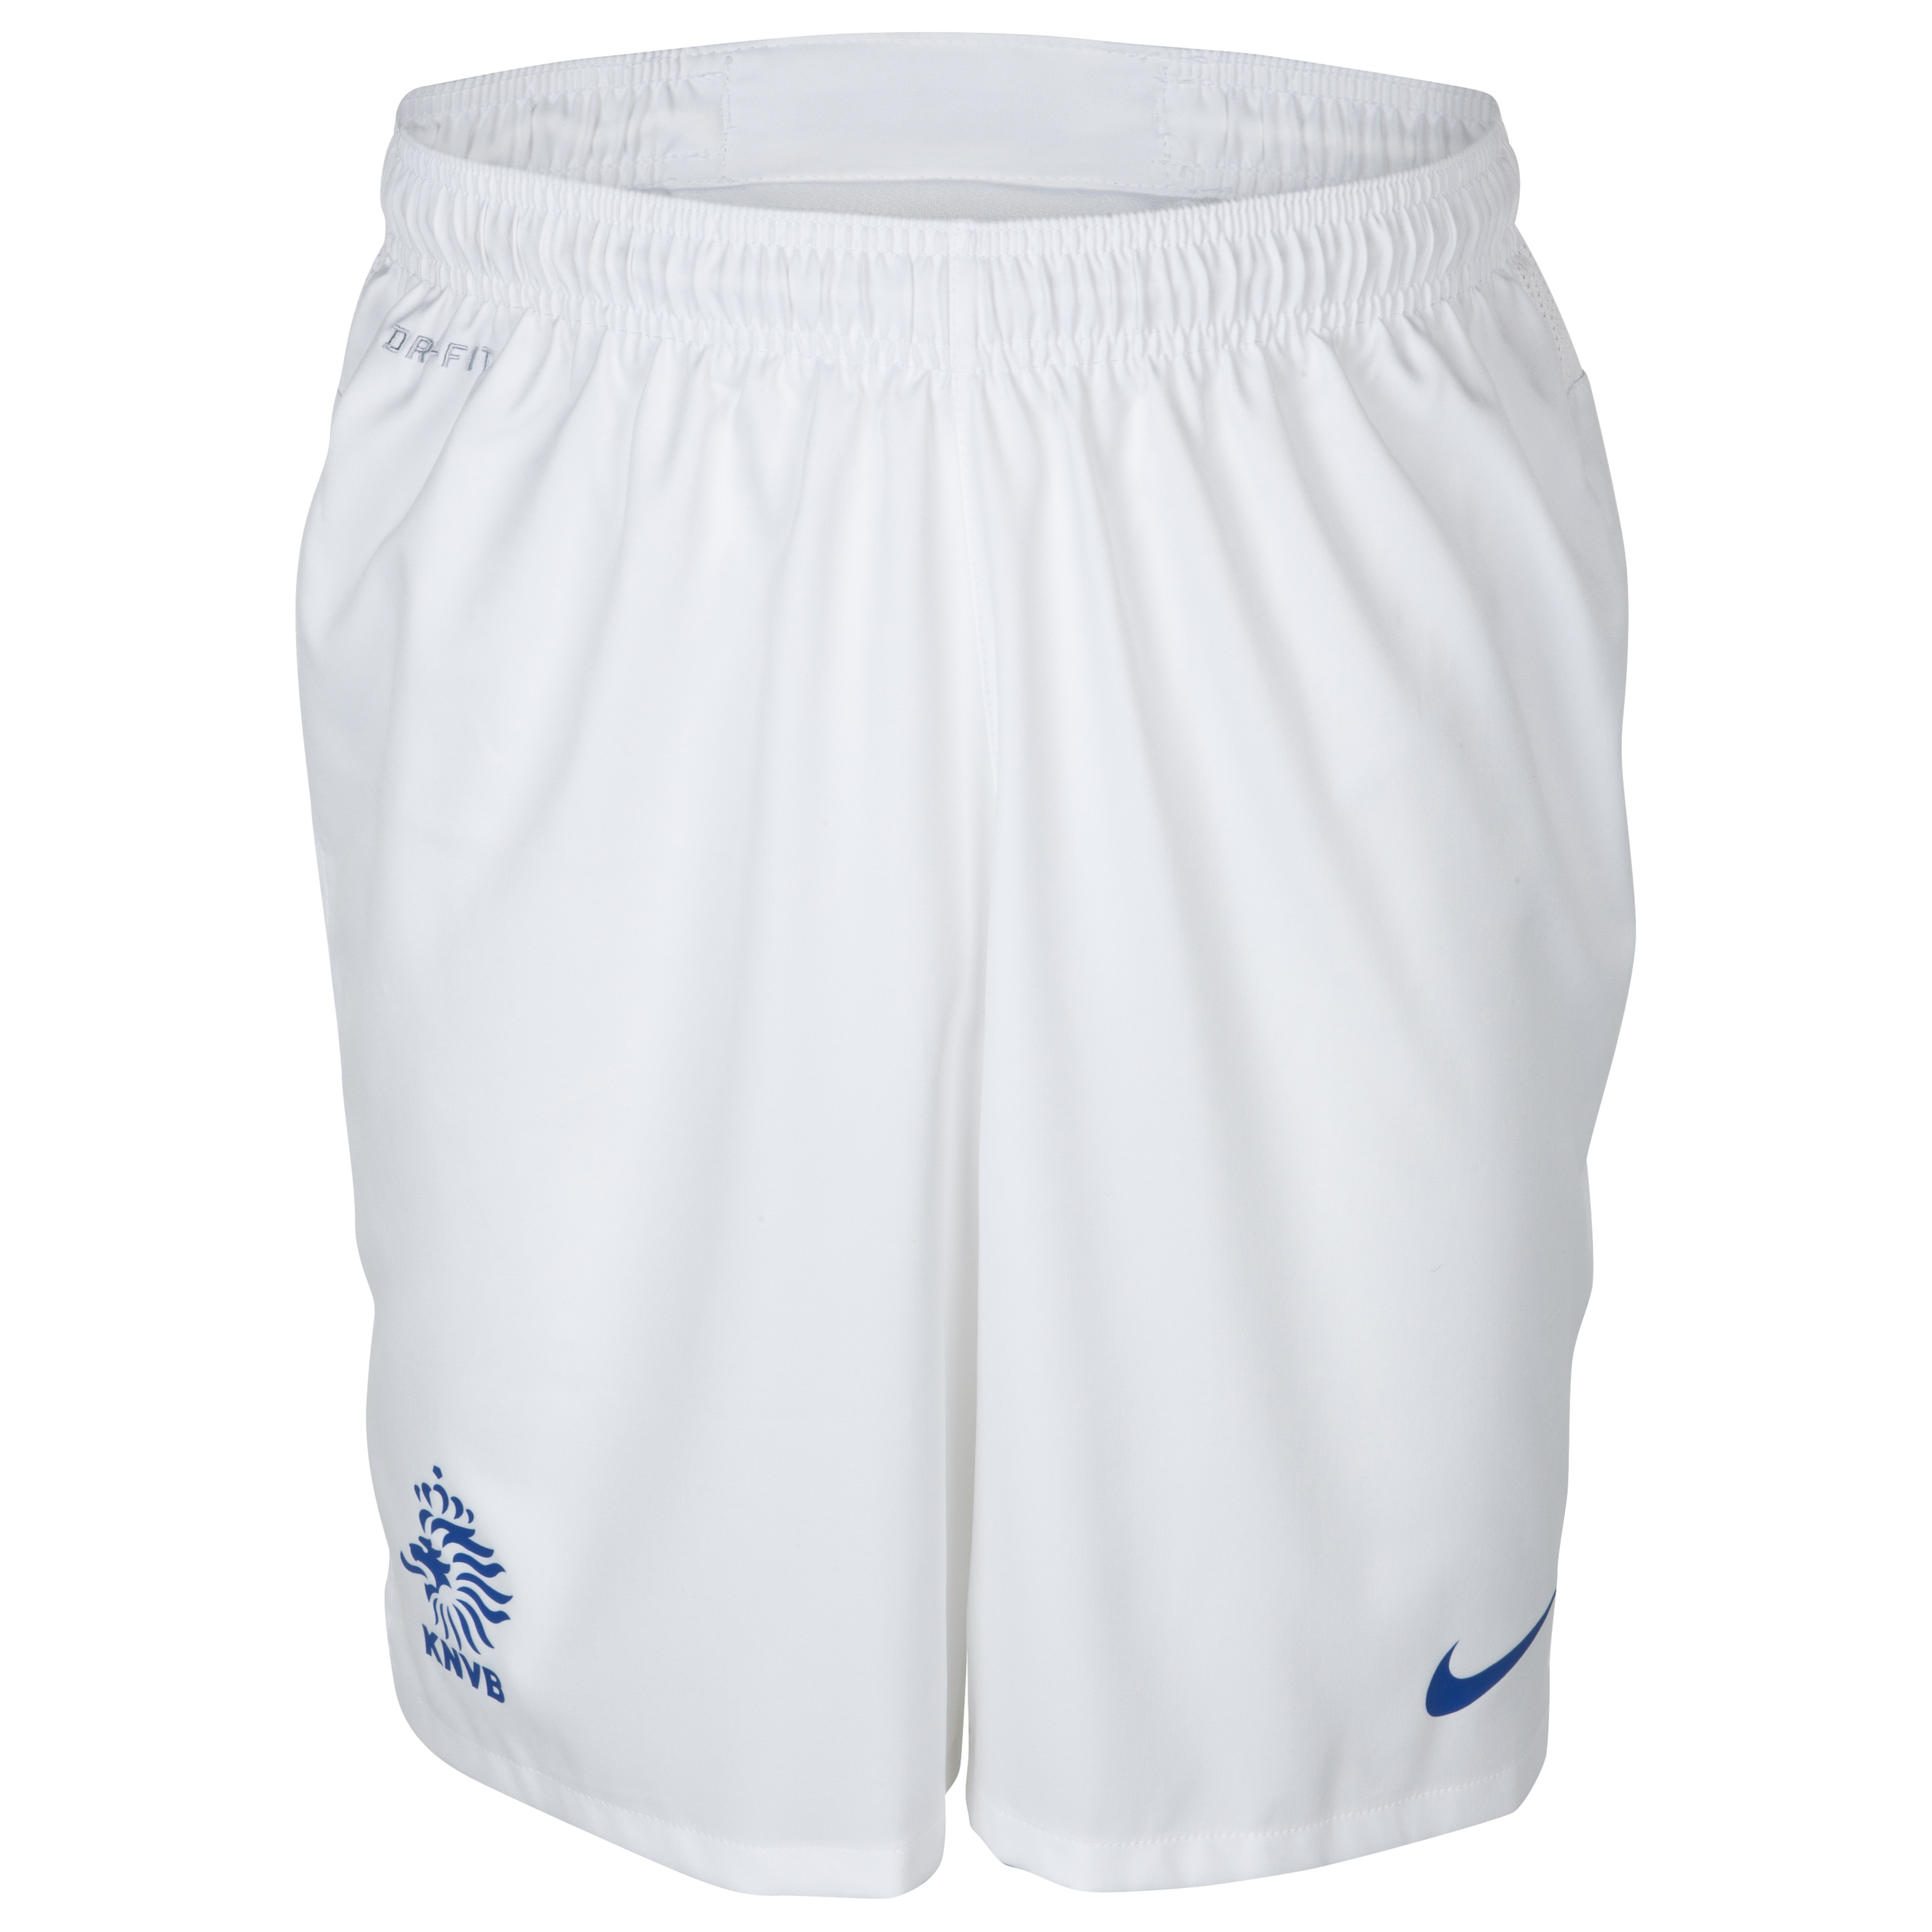 Netherlands Away Short 2013/14 - Football White/Varsity Royal